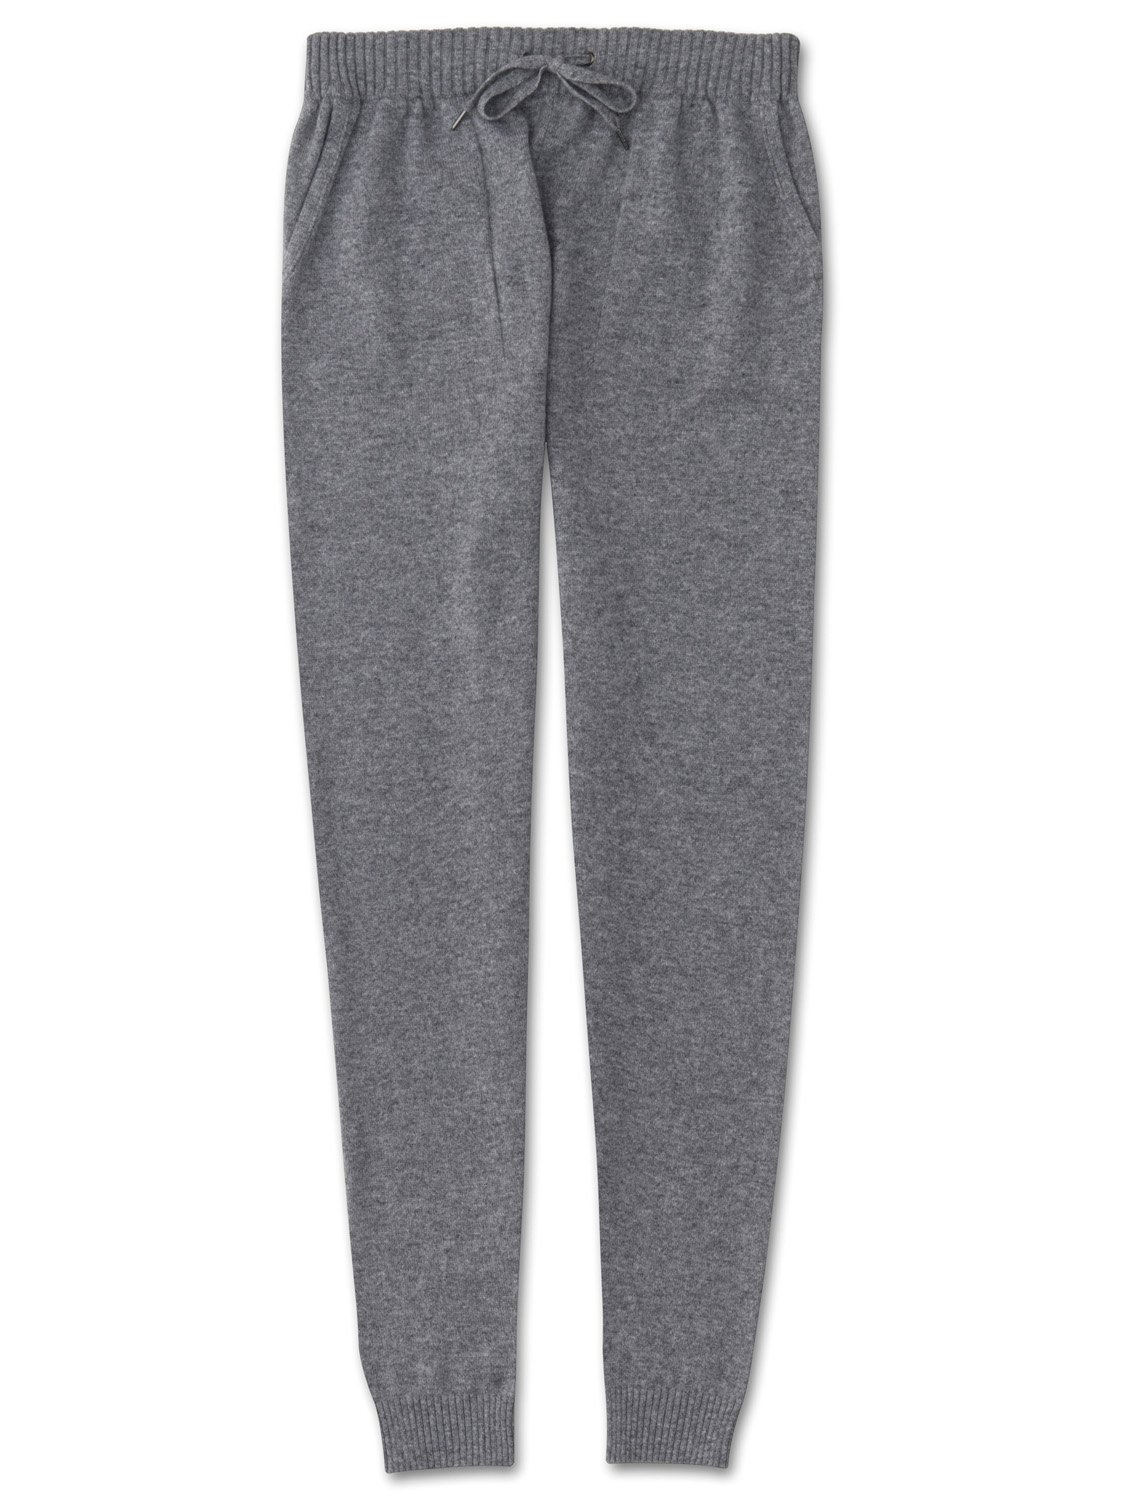 Women's Cashmere Track Pants Finley Pure Cashmere Silver